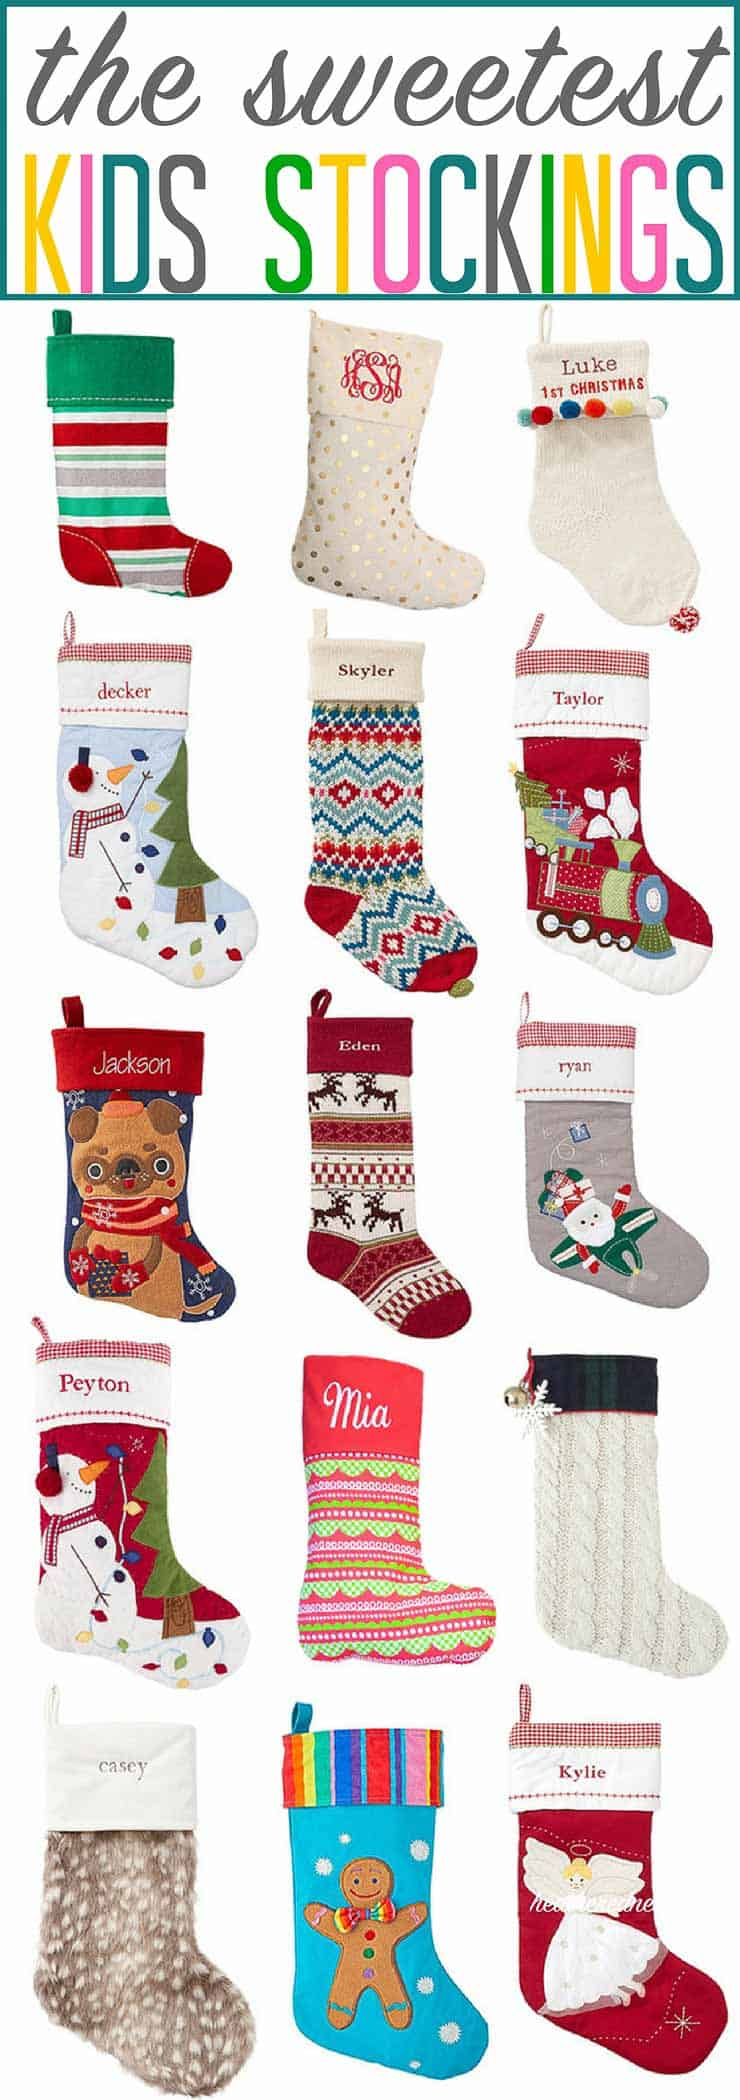 So many sweet kids stockings, so little mantel space! ? If you're in the market for a sweet Christmas stocking or 2, this is GREAT! #christmasstockings #christmas #christmasstocking #stockingsforkids #kidsstockings